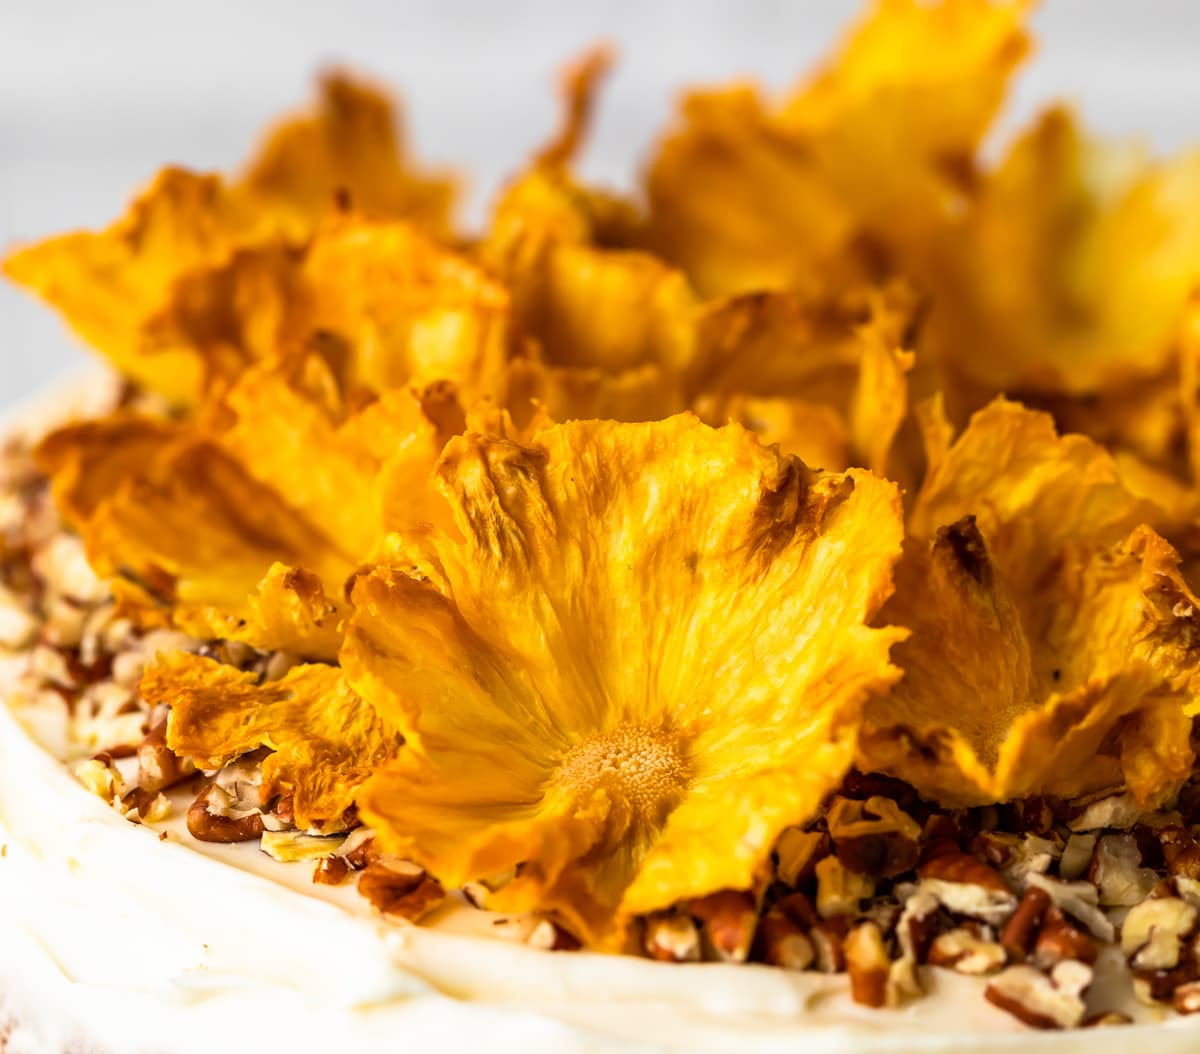 dried pineapple flowers